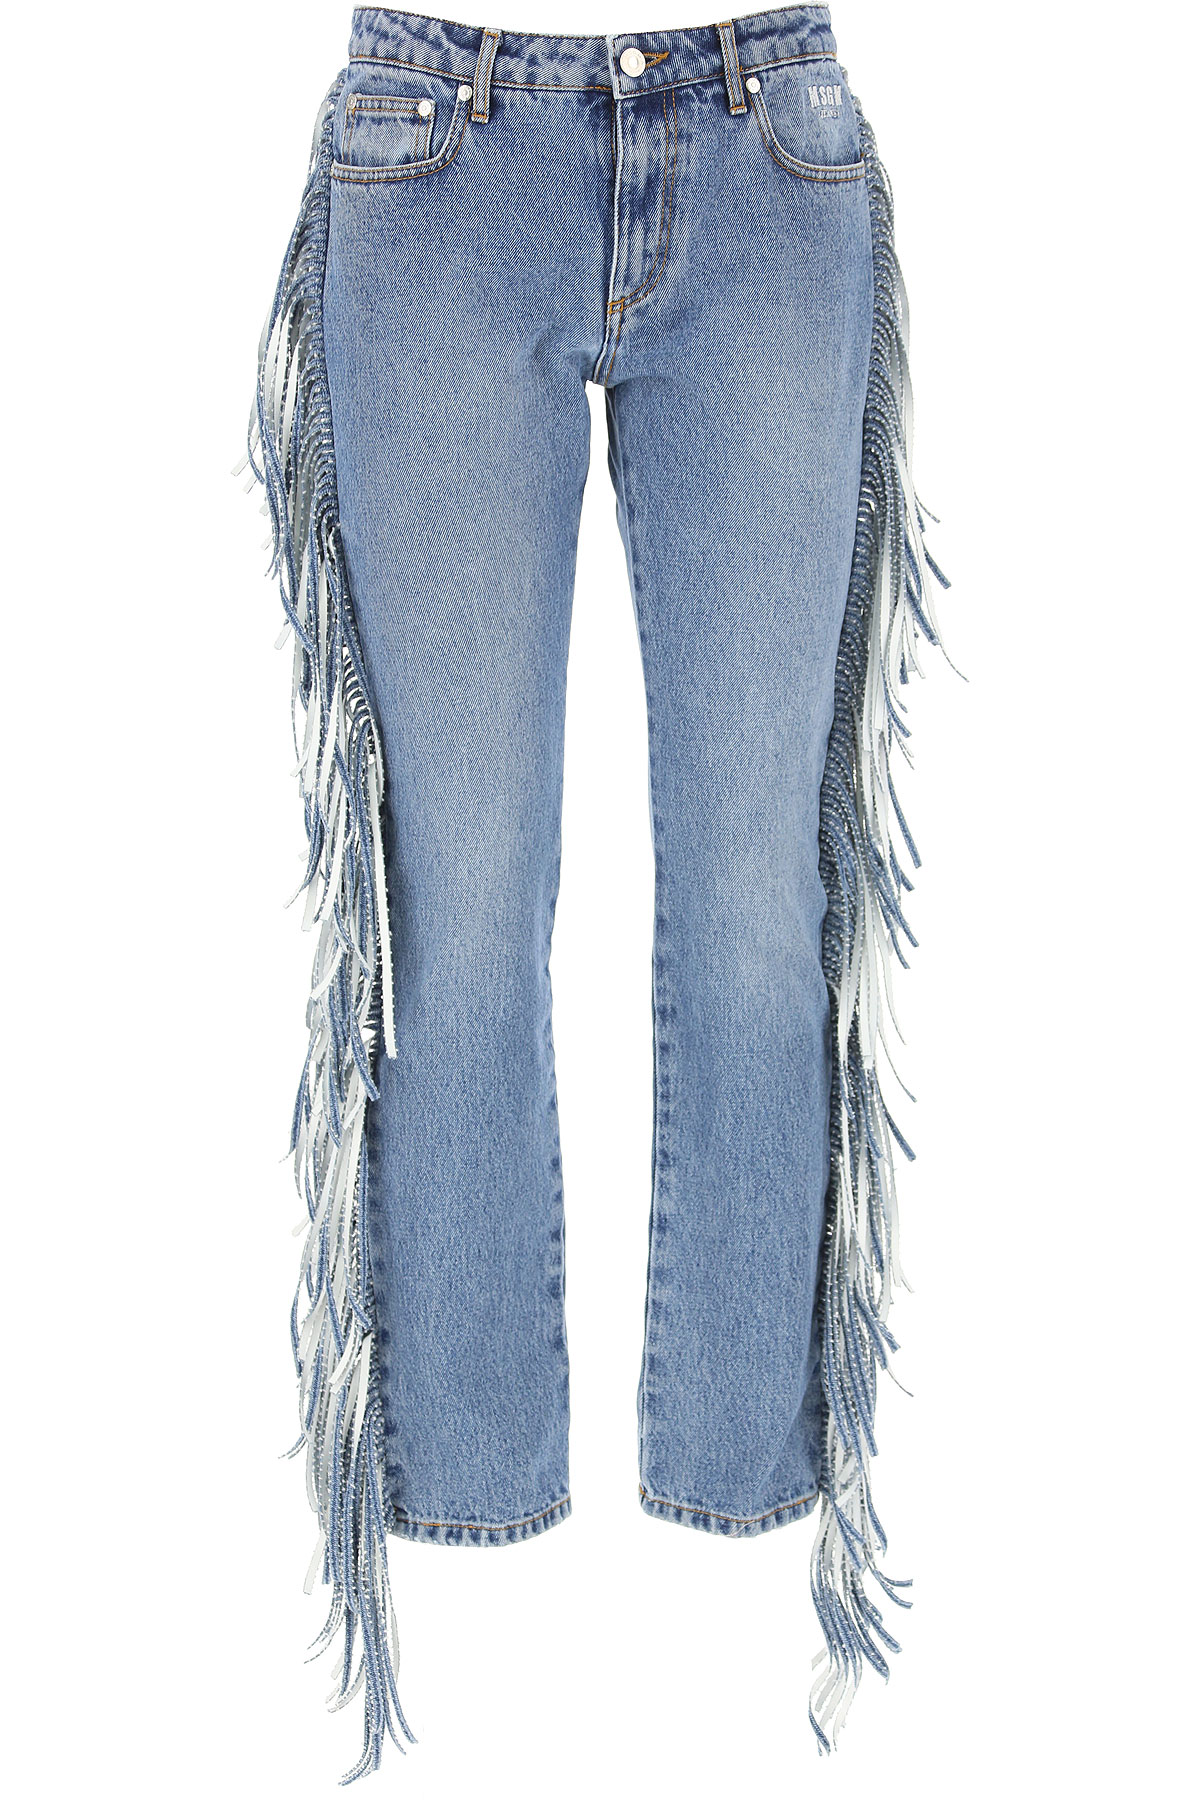 MSGM Jeans, Blue Denim, Cotton, 2017, 26 28